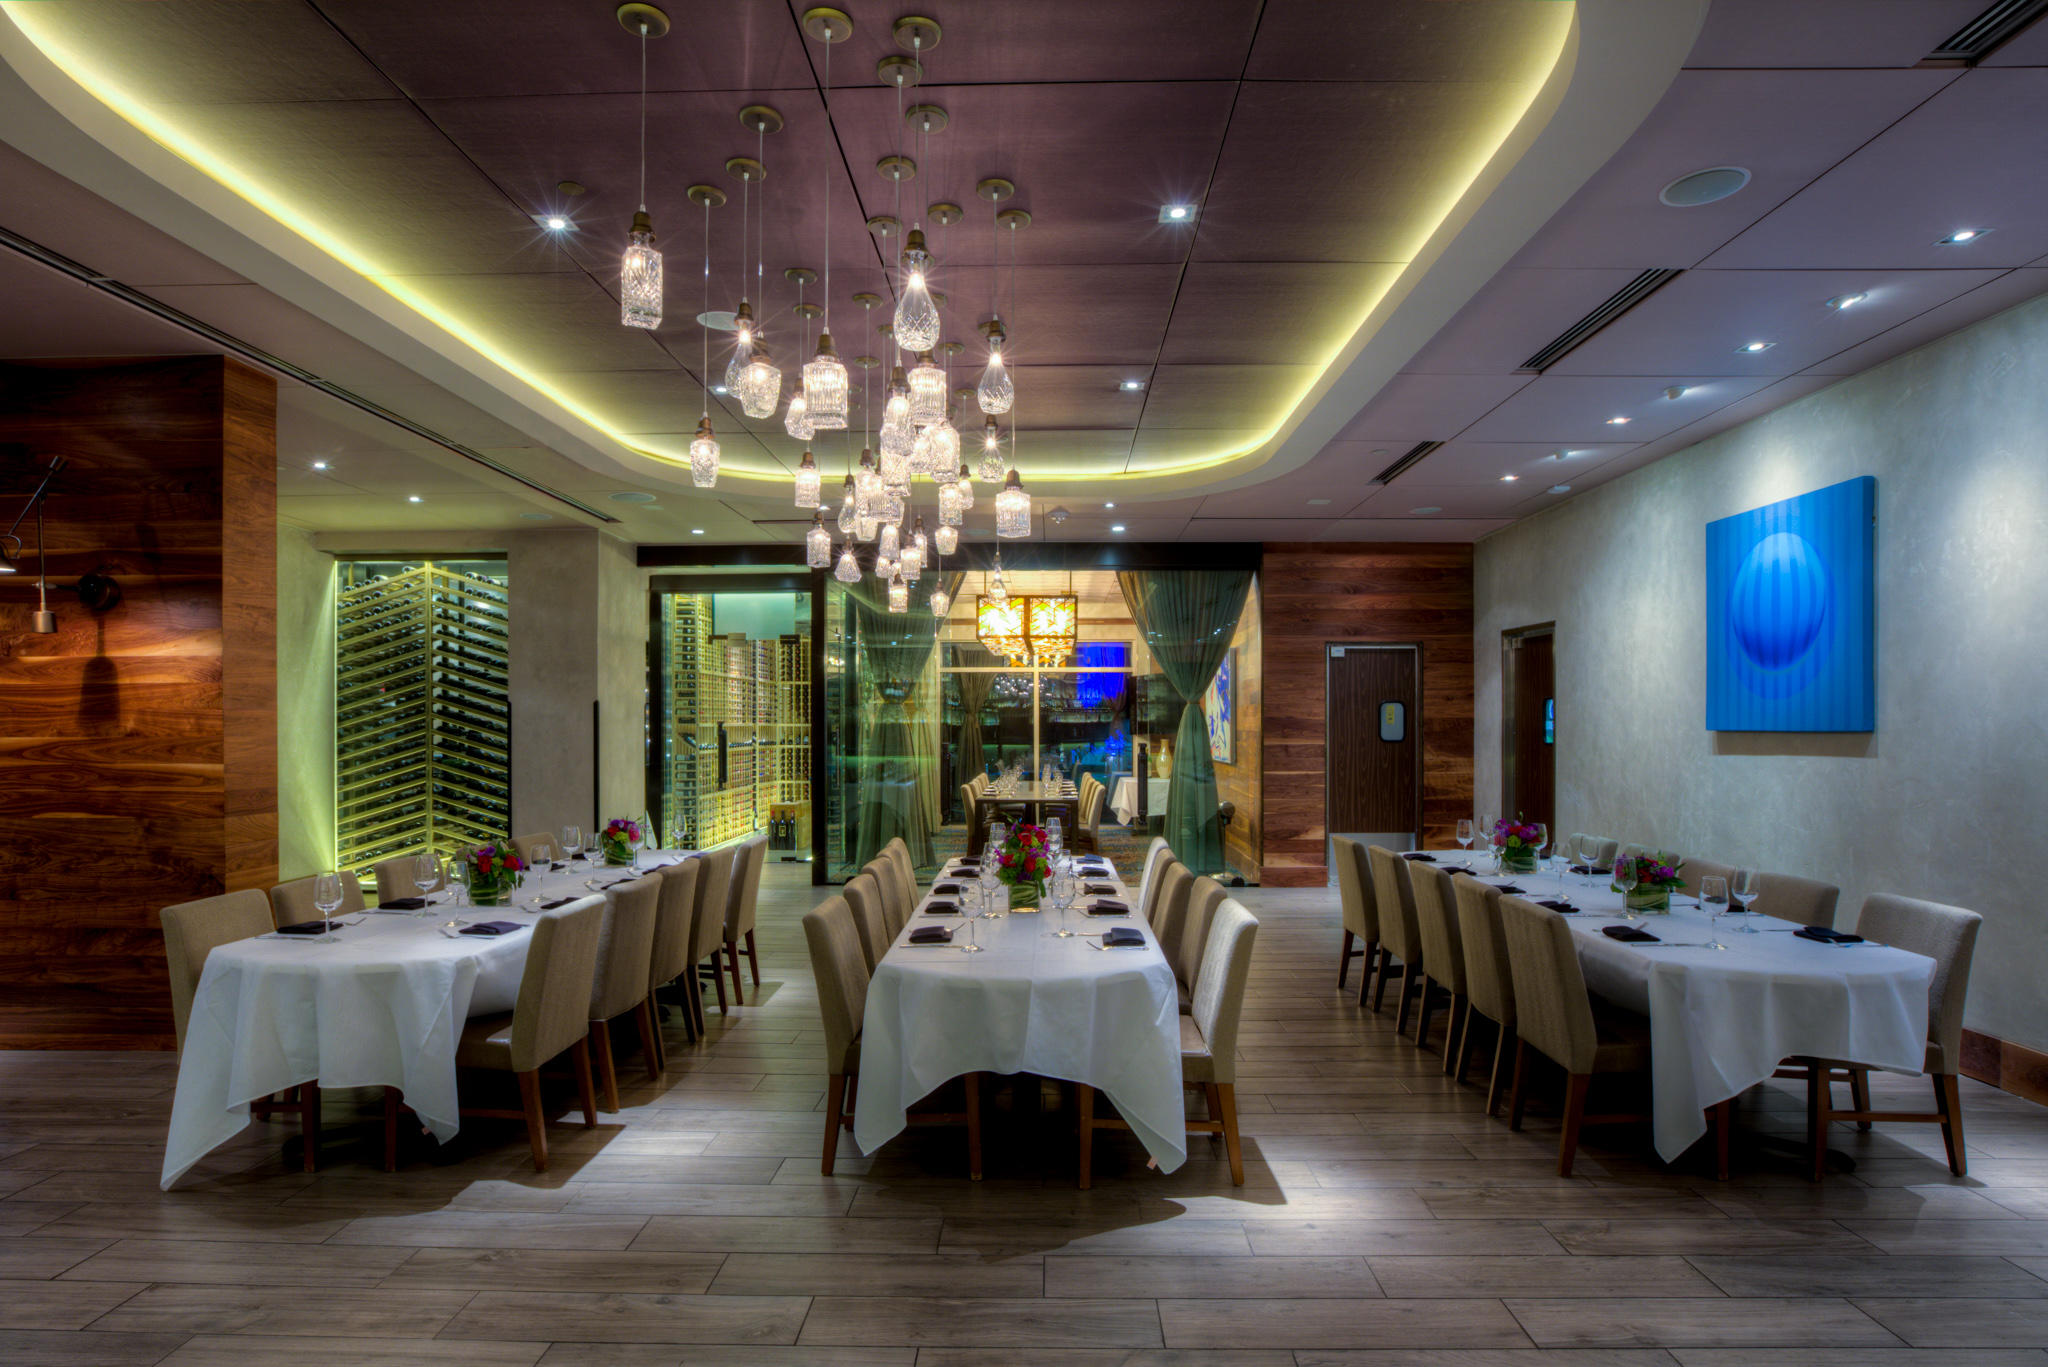 Del Frisco's Double Eagle Steakhouse Orlando VERANDA ROOM private dining room